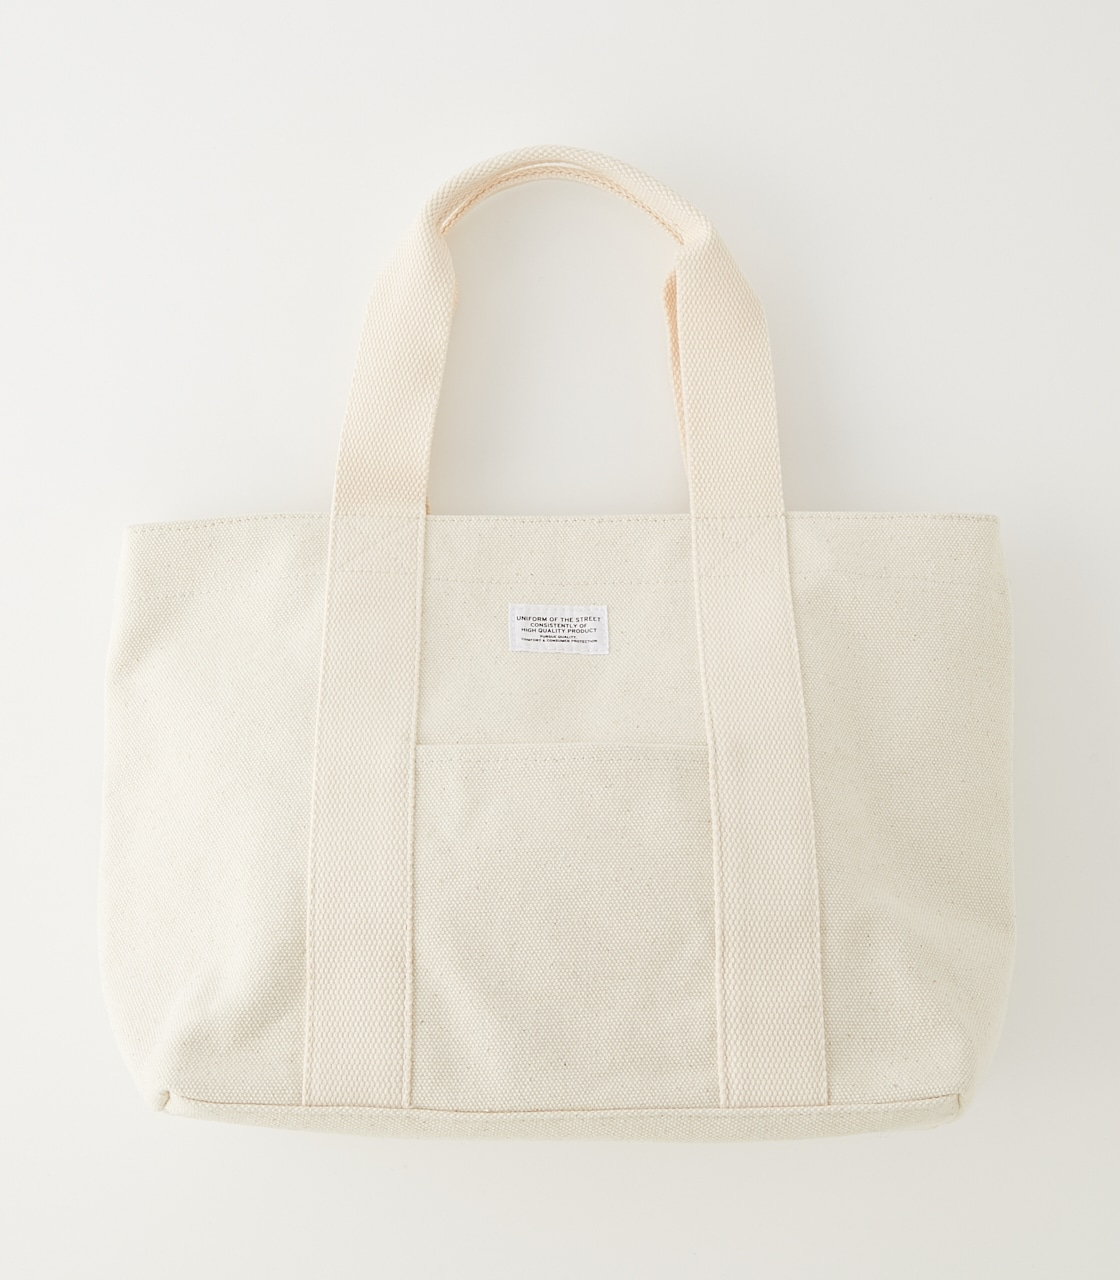 CANVAS MINI TOTE BAG/キャンバスミニトートバッグ 詳細画像 O/WHT 1